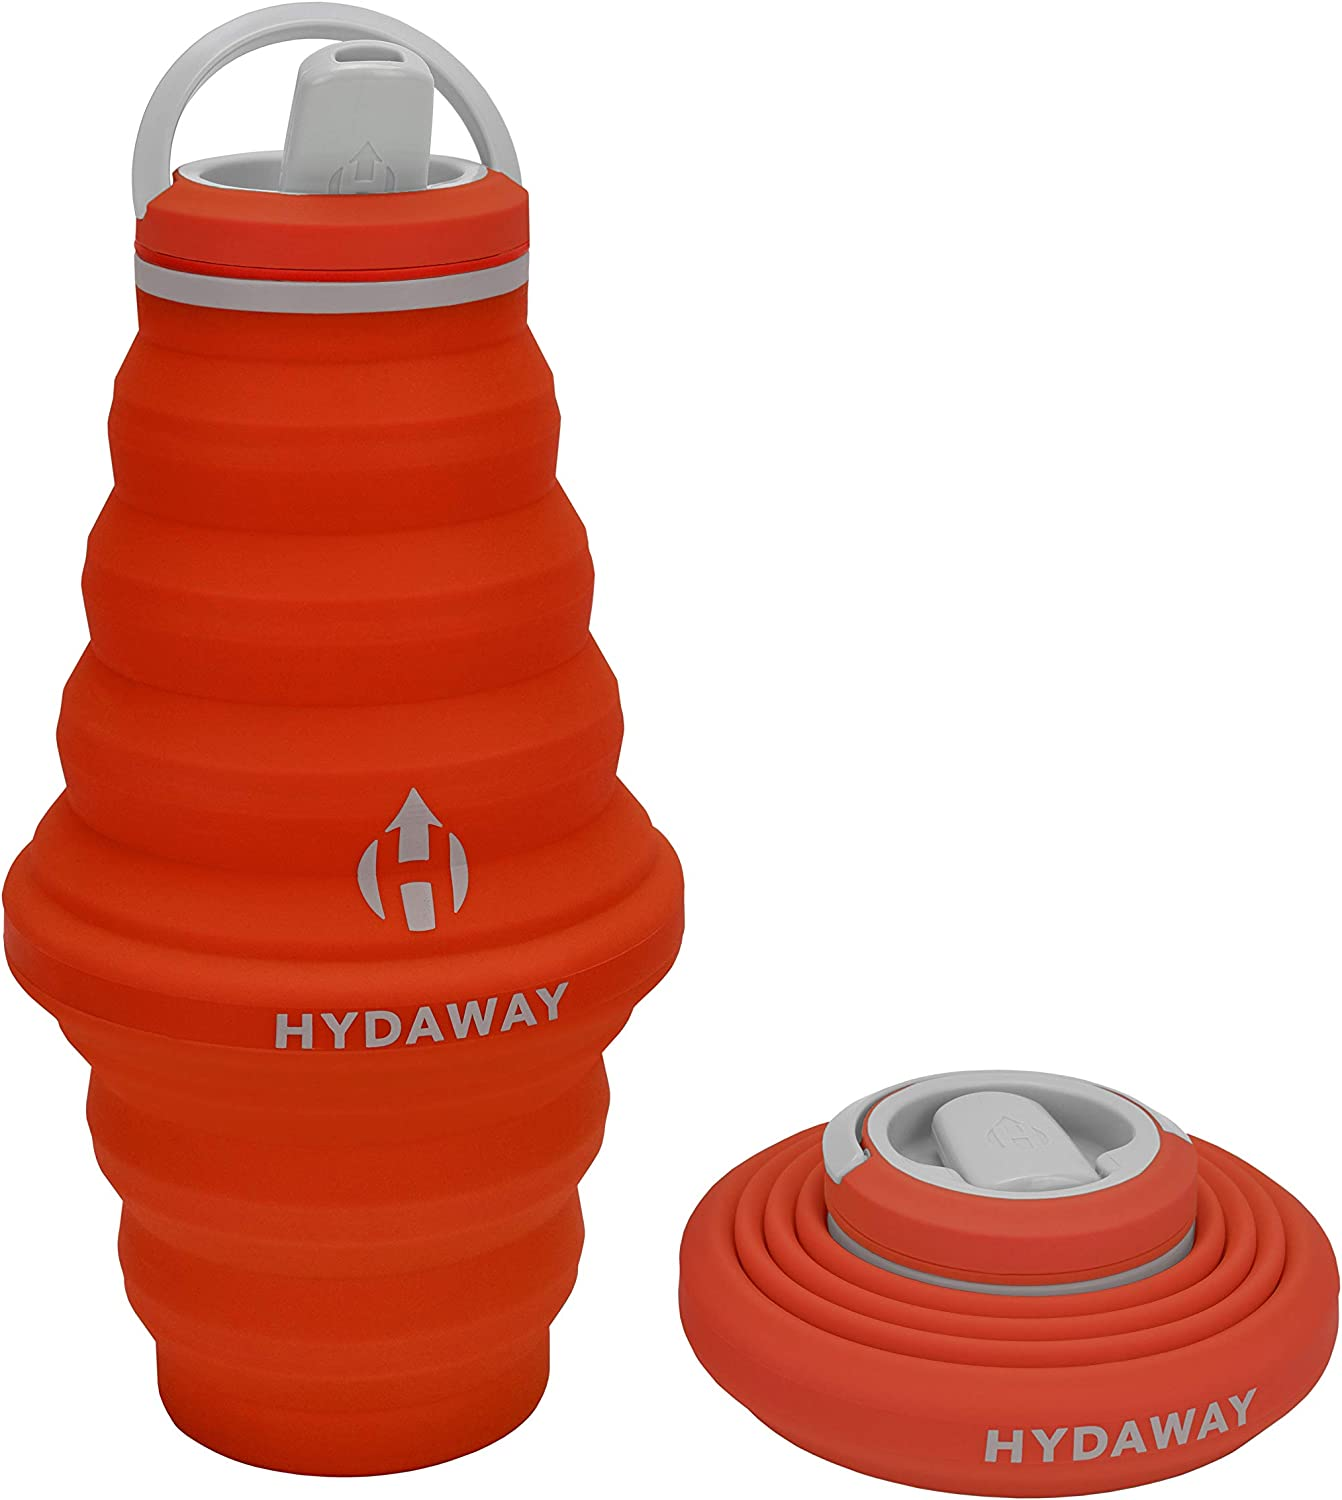 HYDAWAY Collapsible Water Bottle, 25 oz Spout Lid | Ultra-Packable, Travel-Friendly, Food-Grade Silicone